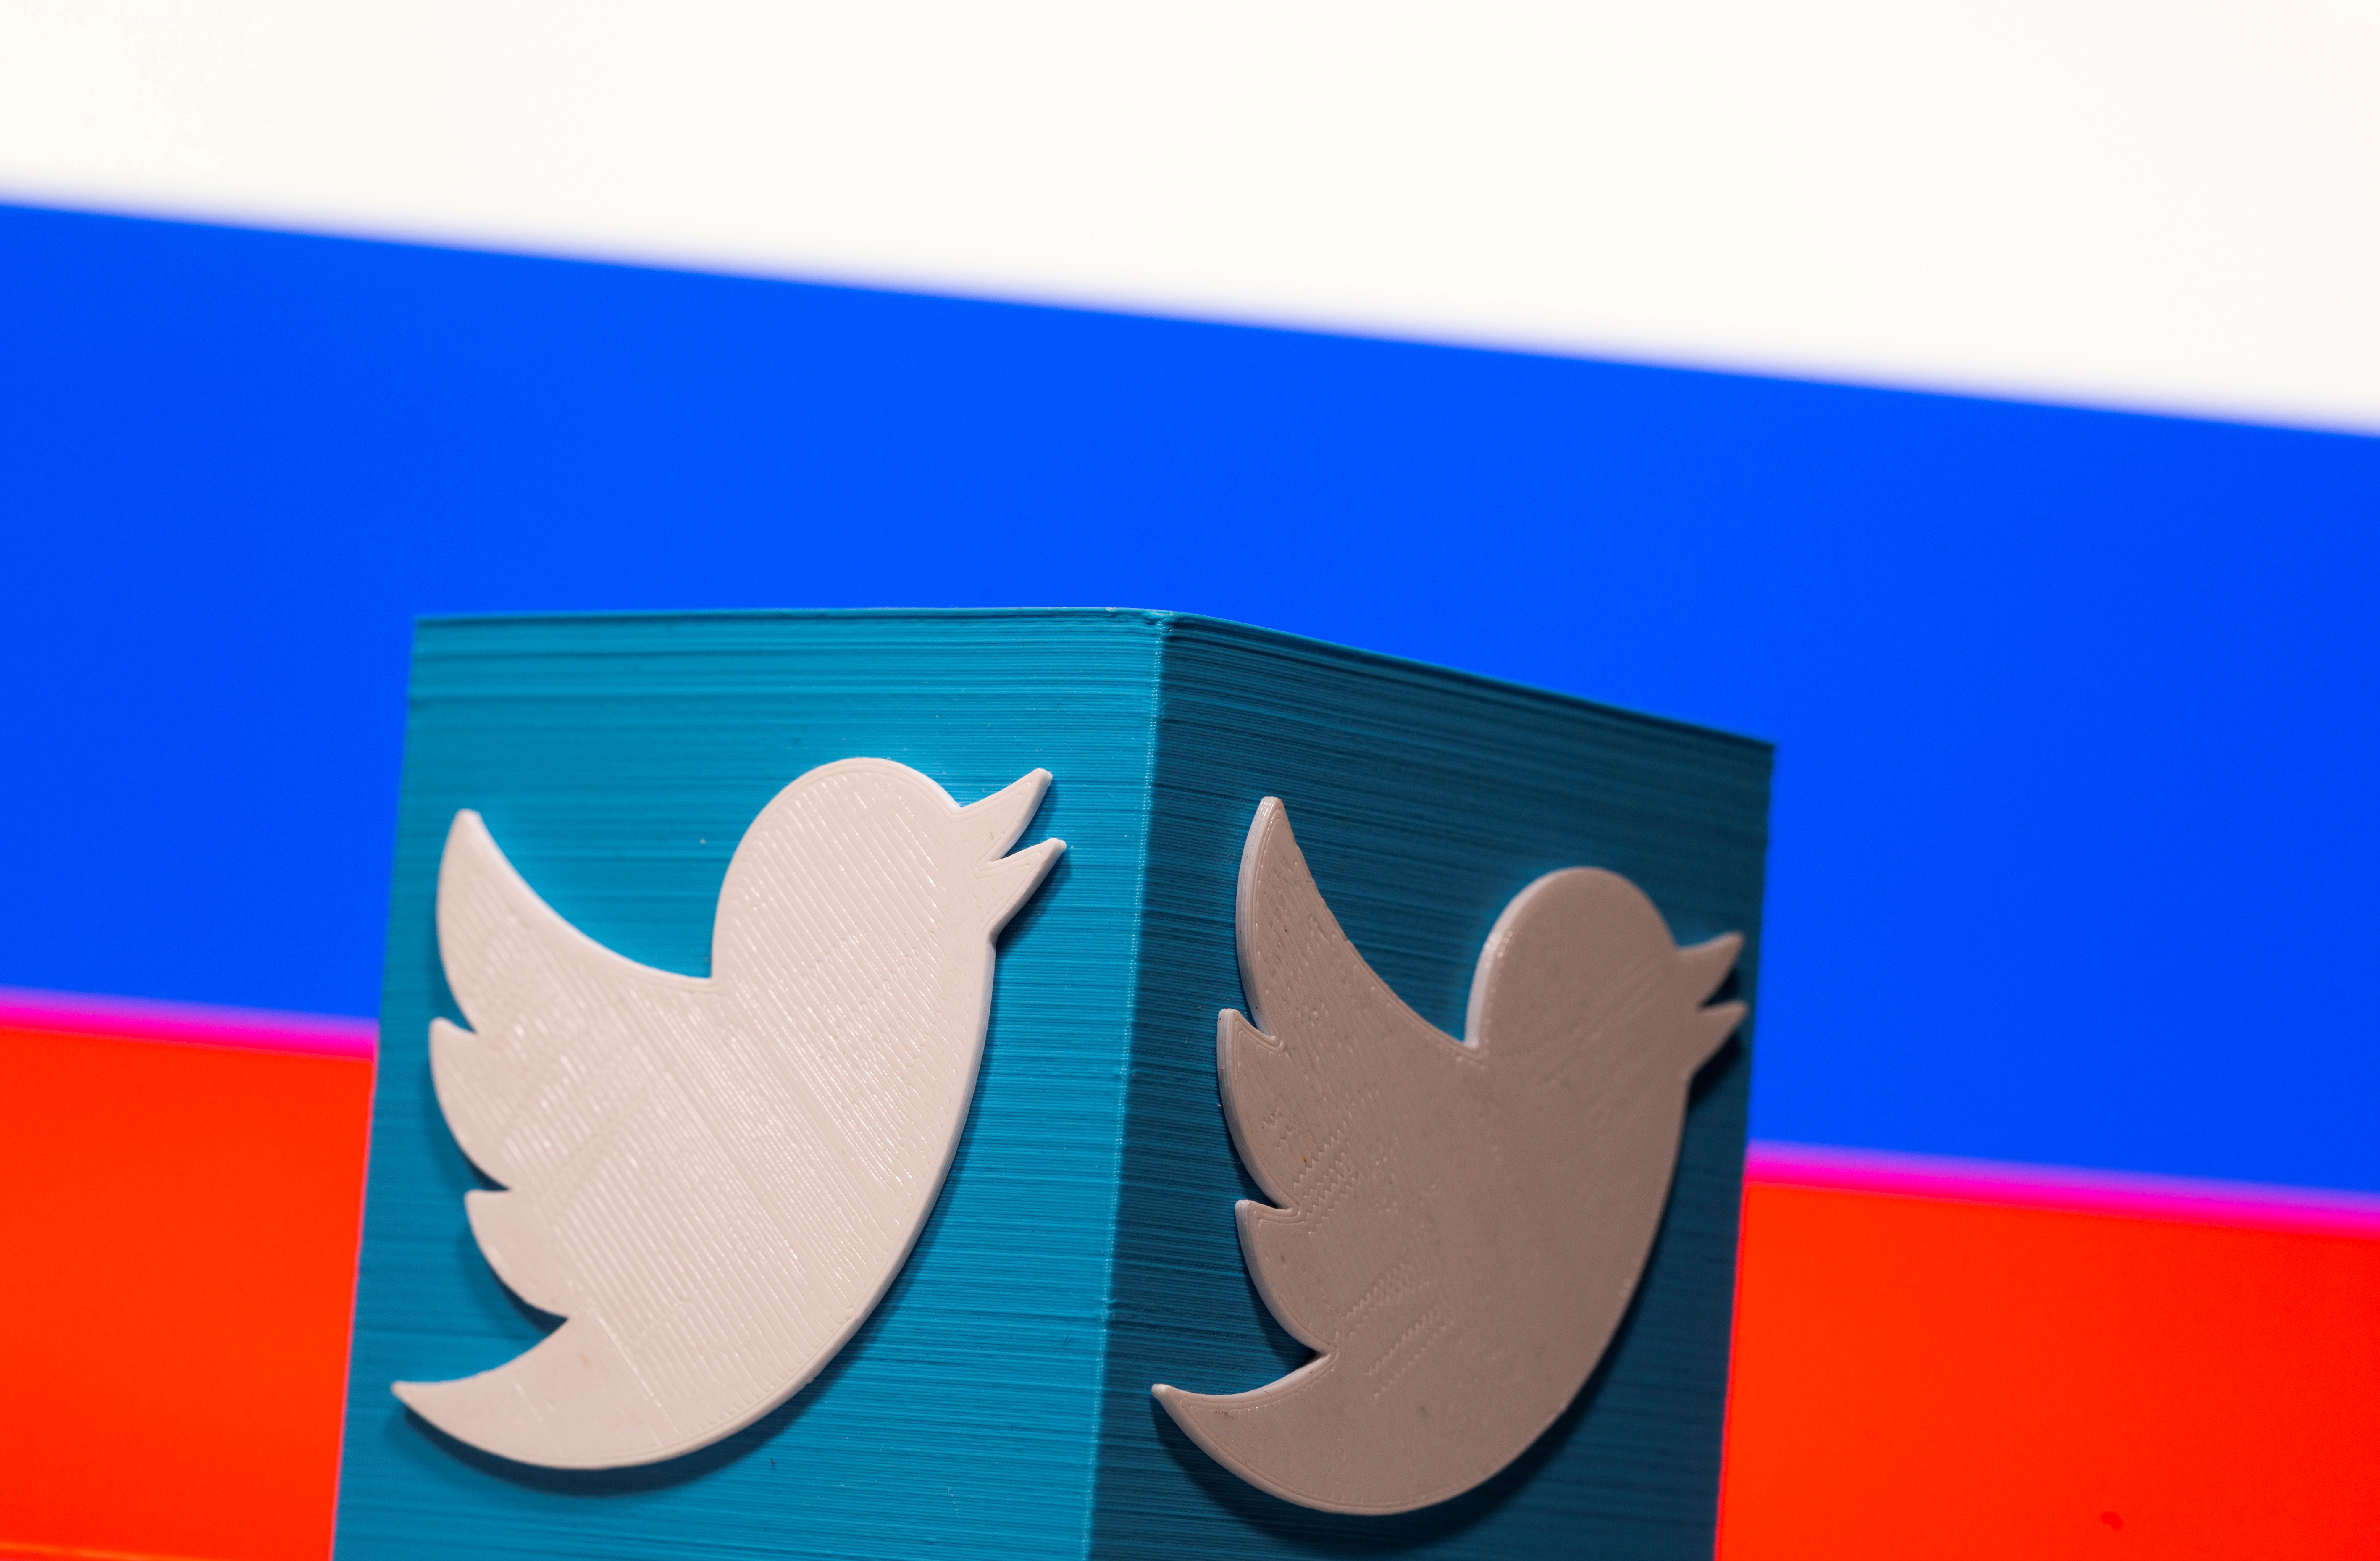 A 3D-printed Twitter logo is pictured in front of a displayed Russian flag in this illustration taken March 10, 2021. REUTERS/Dado Ruvic/Illustration